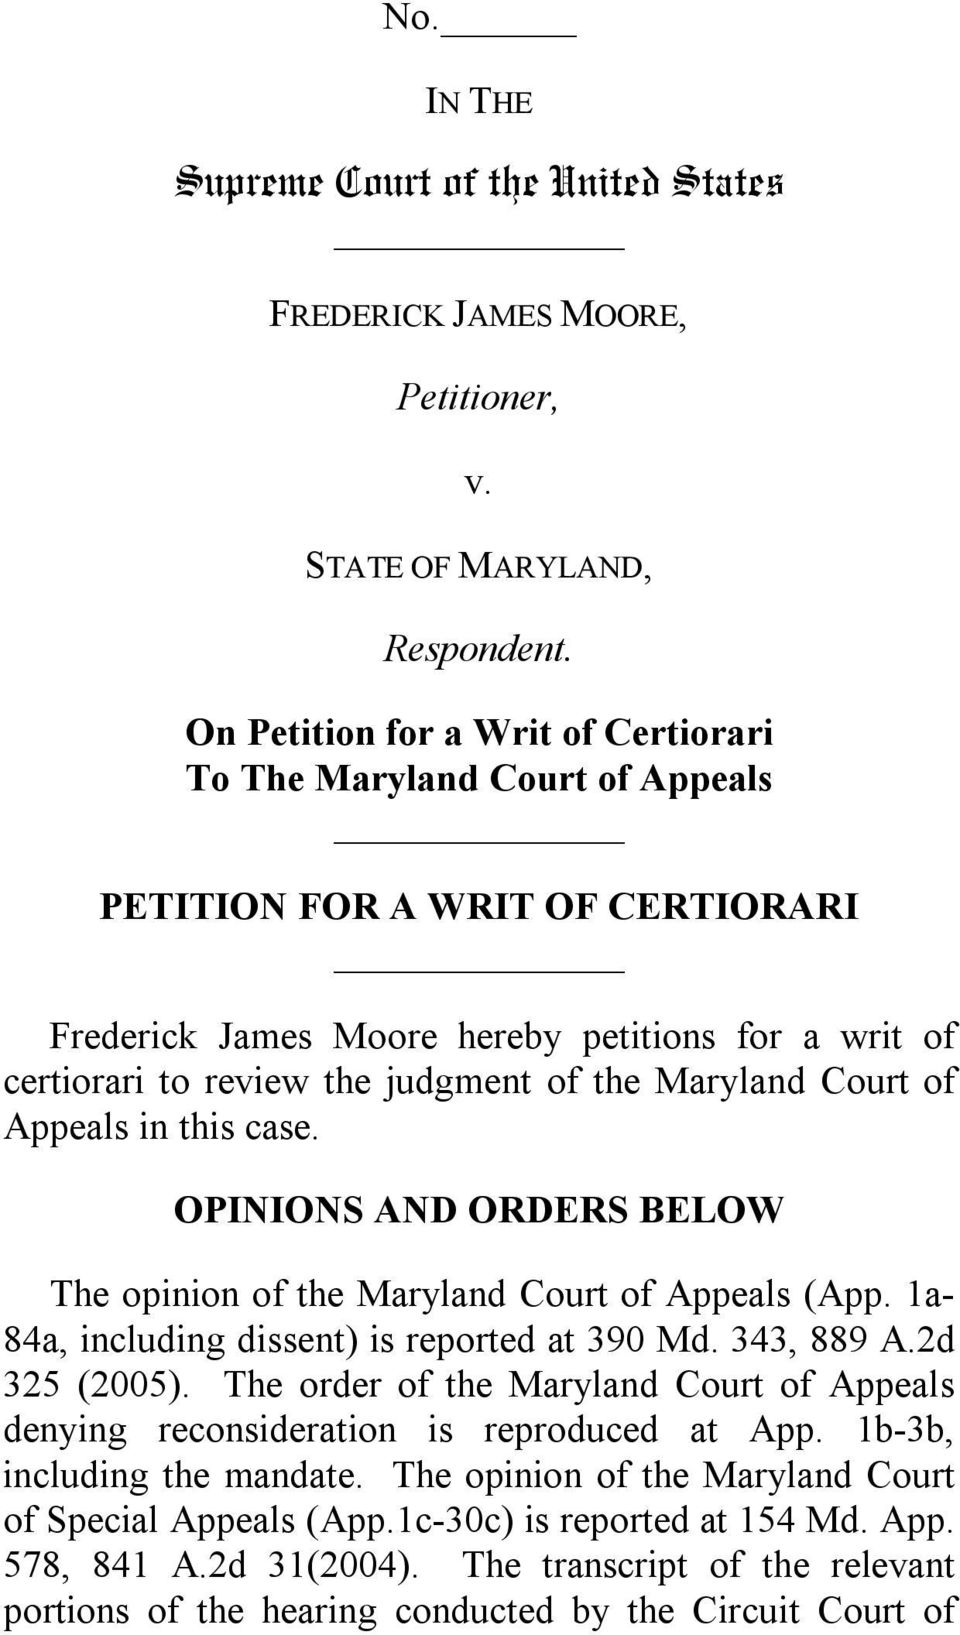 Maryland Court of Appeals in this case. OPINIONS AND ORDERS BELOW The opinion of the Maryland Court of Appeals (App. 1a- 84a, including dissent) is reported at 390 Md. 343, 889 A.2d 325 (2005).